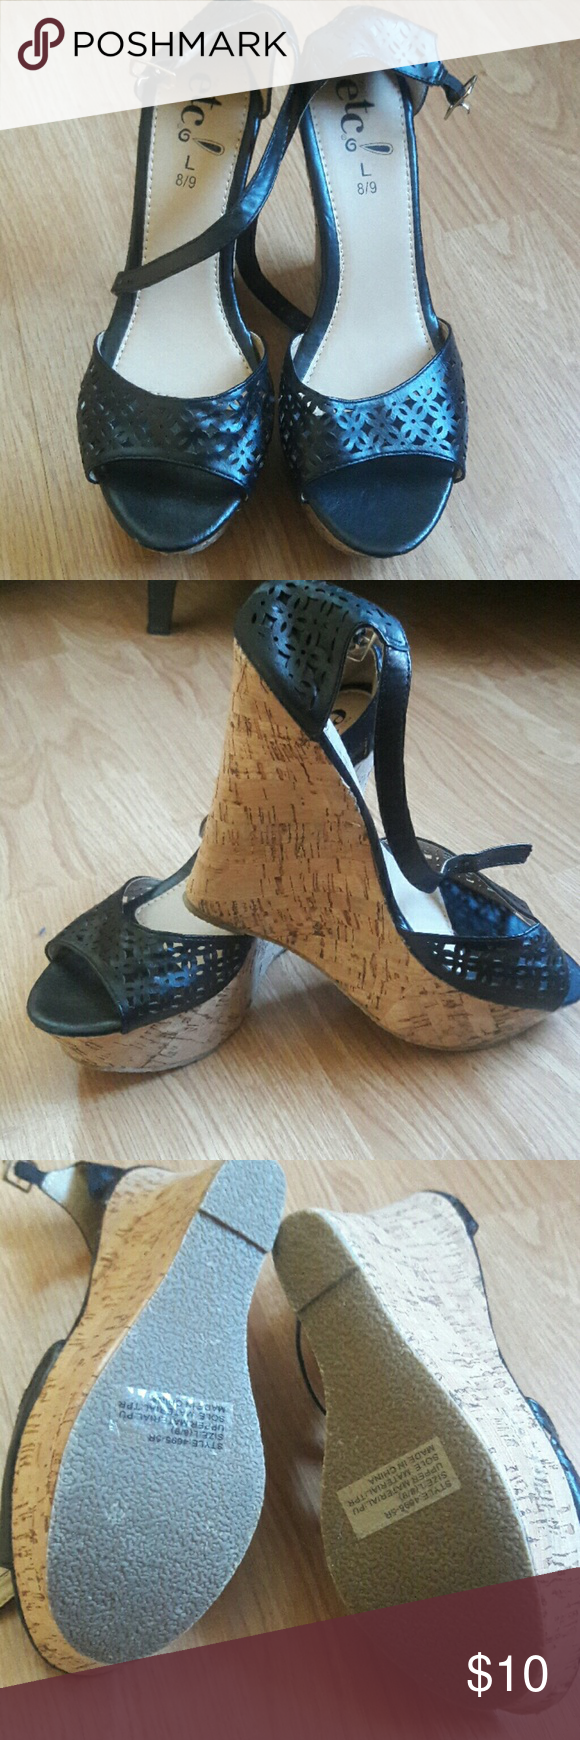 cfd919fed63 NWOT rue21 wedge sandals NWOT rue21 open toe wedge sandals in black. Size L  8 9 Rue 21 Shoes Wedges